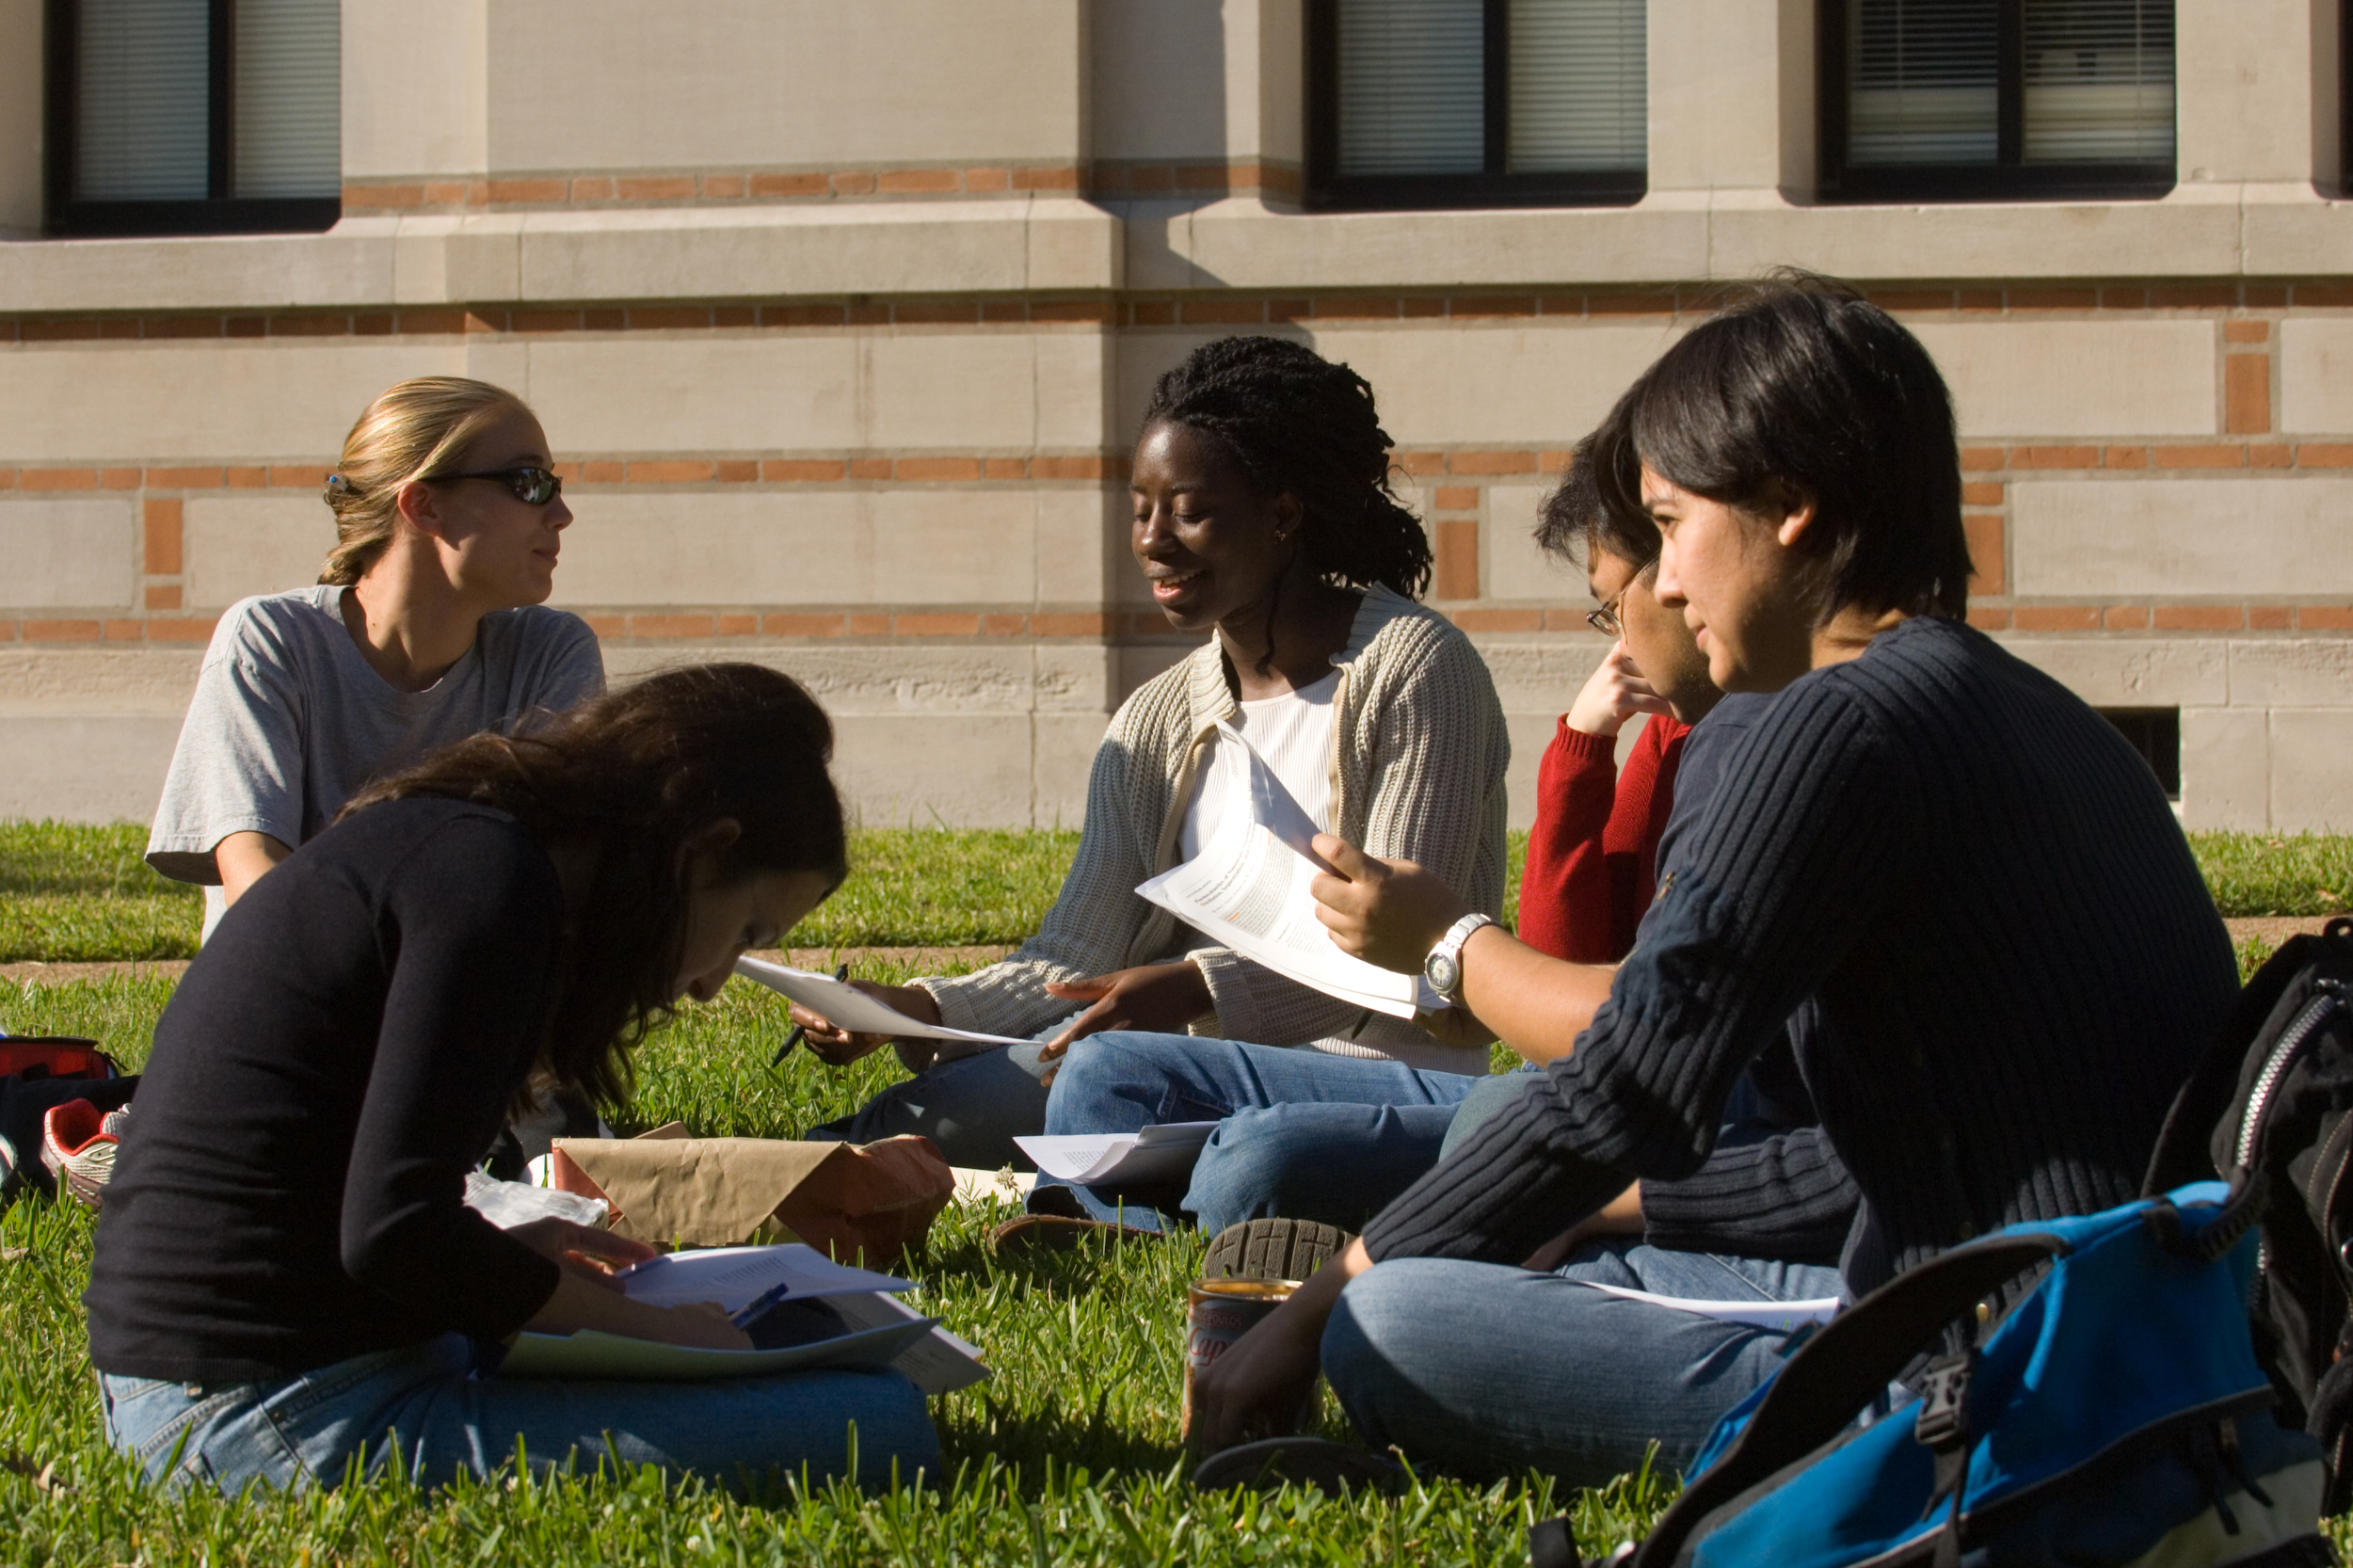 Rice University students sitting in the grass discussing papers.